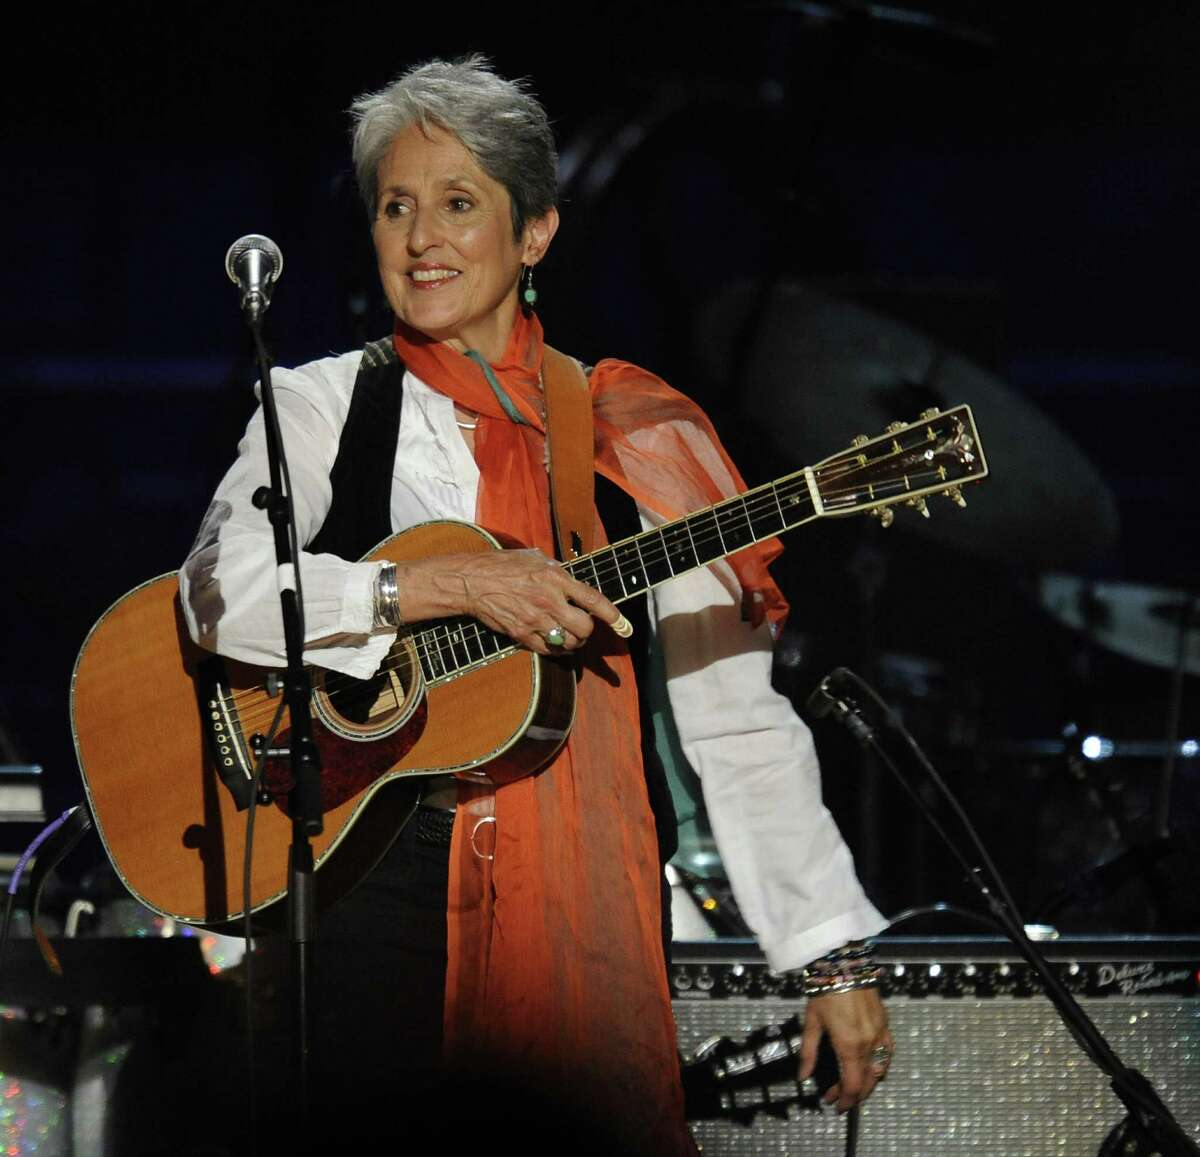 Joan Baez smiles during a concert for folk music legend Pete Seeger at Madison Square Garden in Nedw York on May 3, 2009 marking his 90th birthday. Proceeds from the show will go to Hudson River Sloop Clearwater, an organization founded by the singer 40 years ago to preserve and protect the Hudson River. AFP PHOTO/TIMOTHY A. CLARY (Photo credit should read TIMOTHY A. CLARY/AFP/Getty Images)